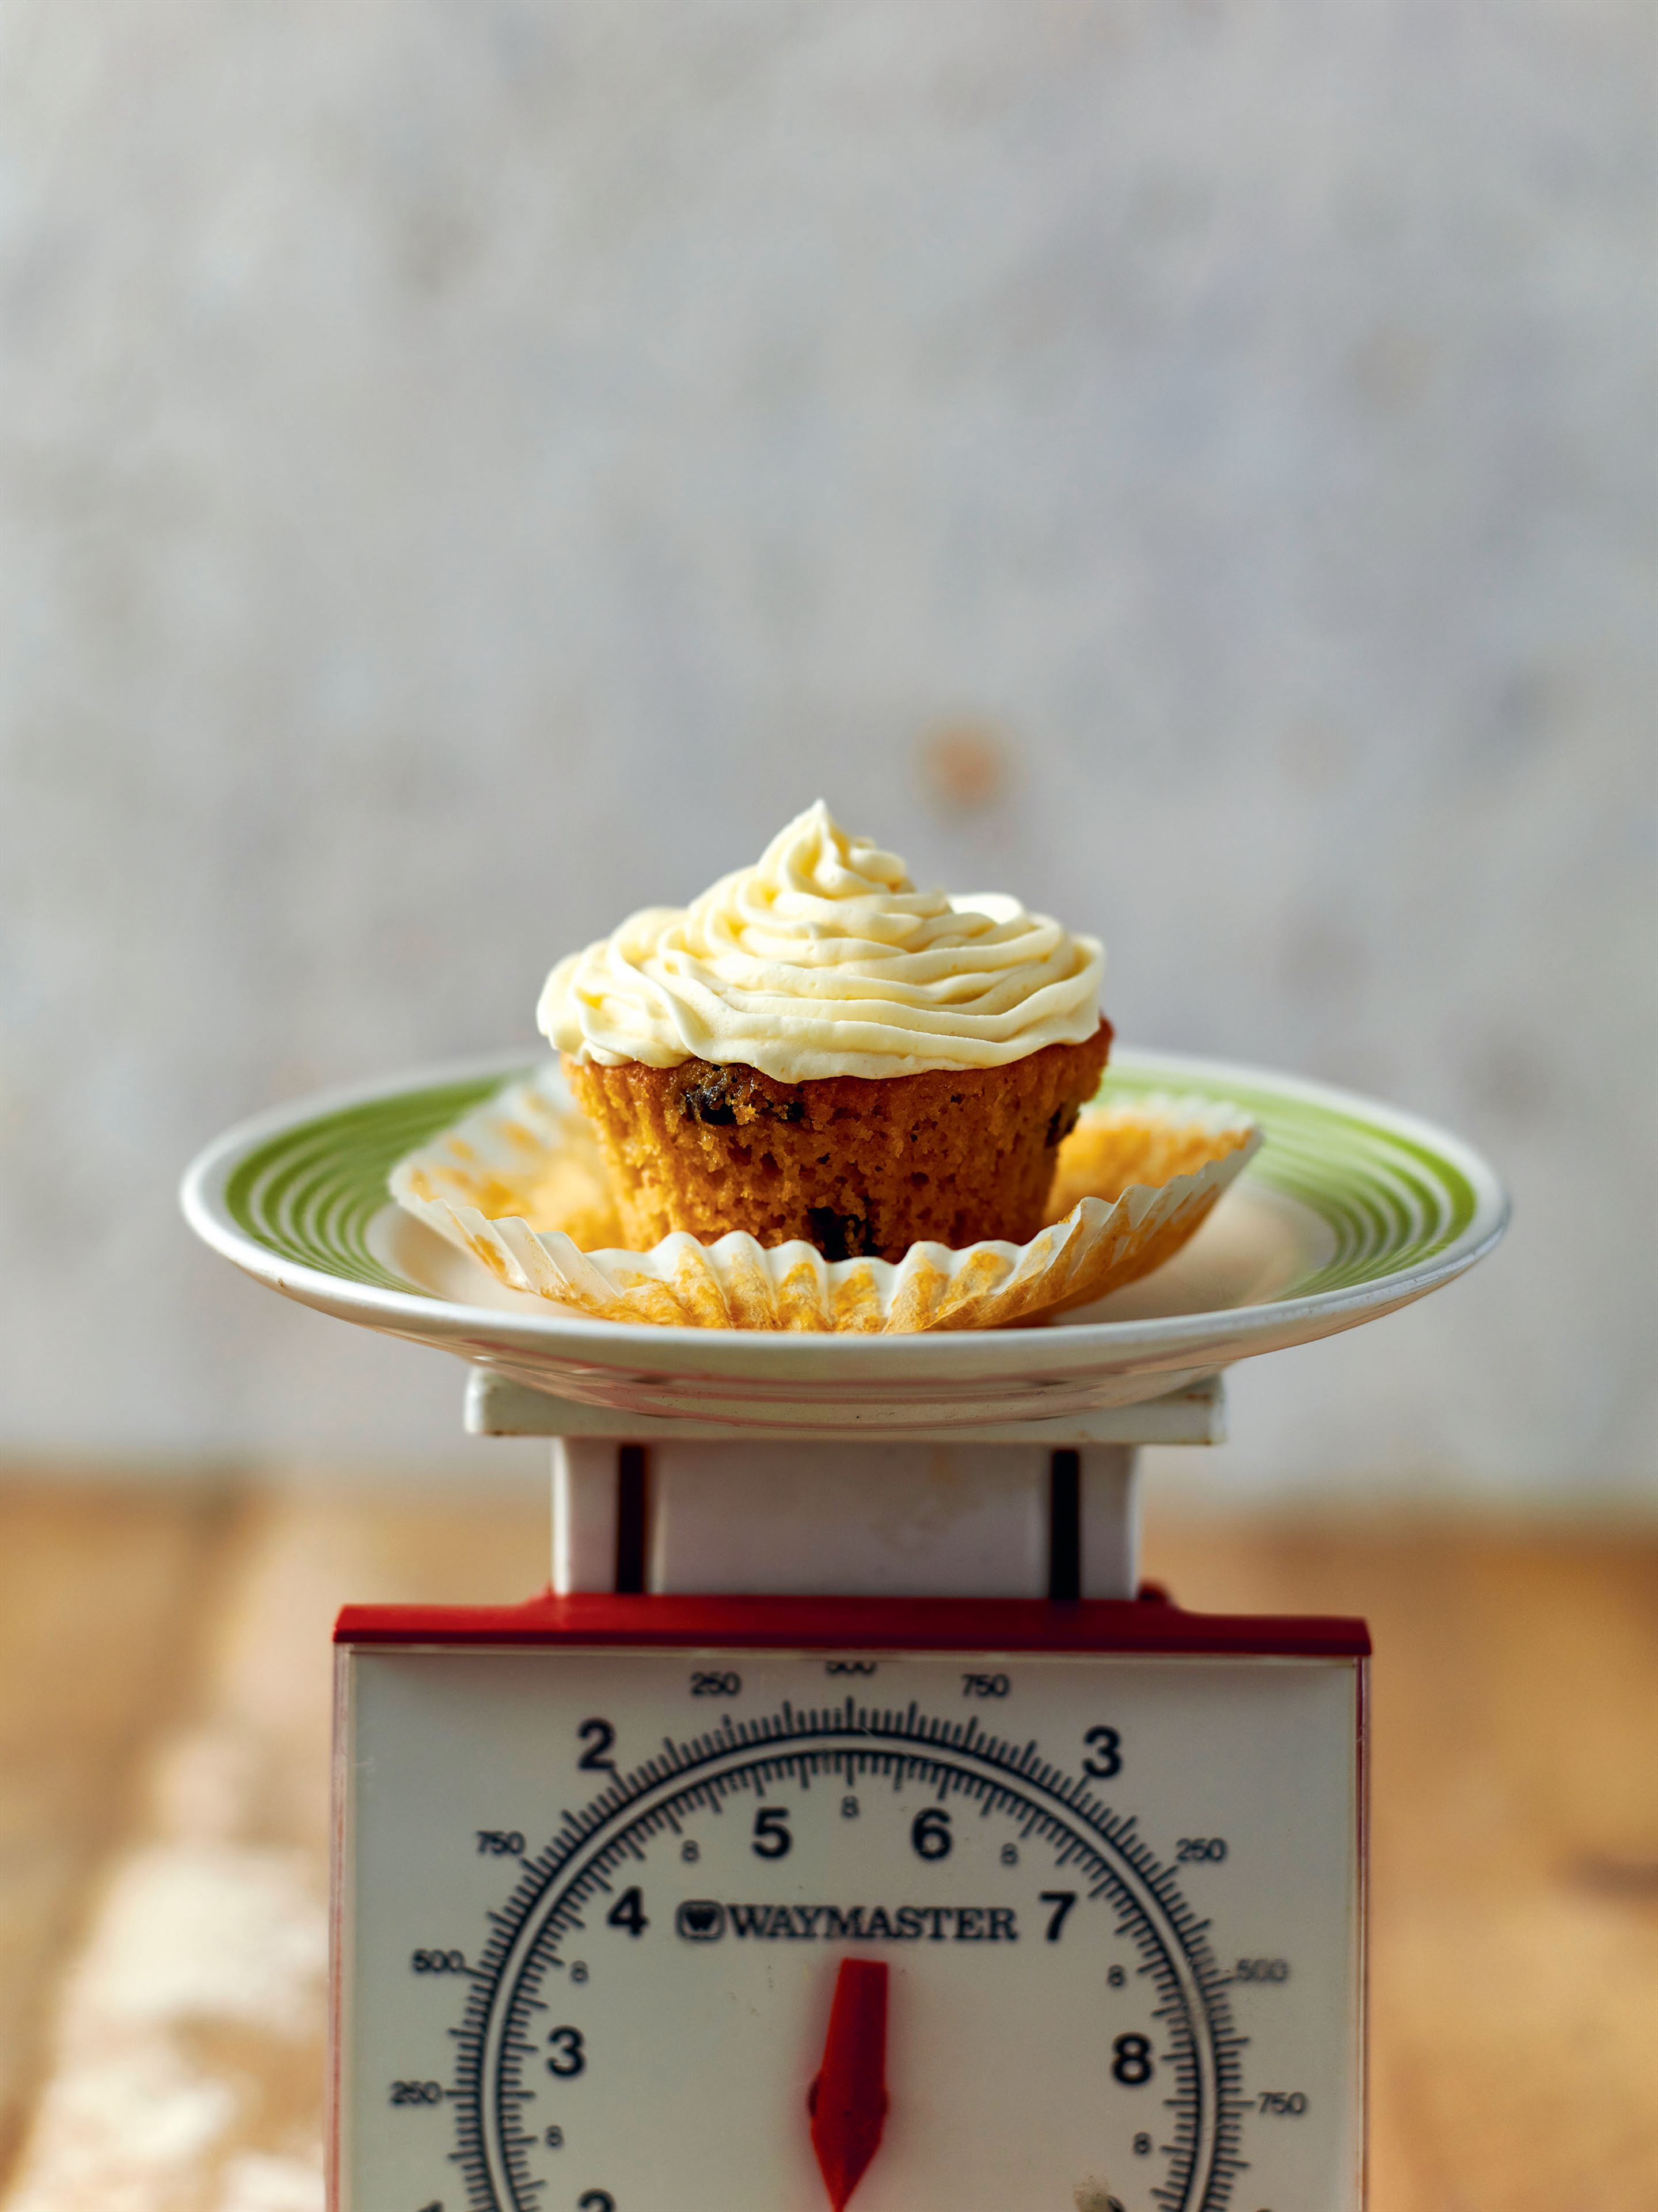 Mincemeat cupcakes